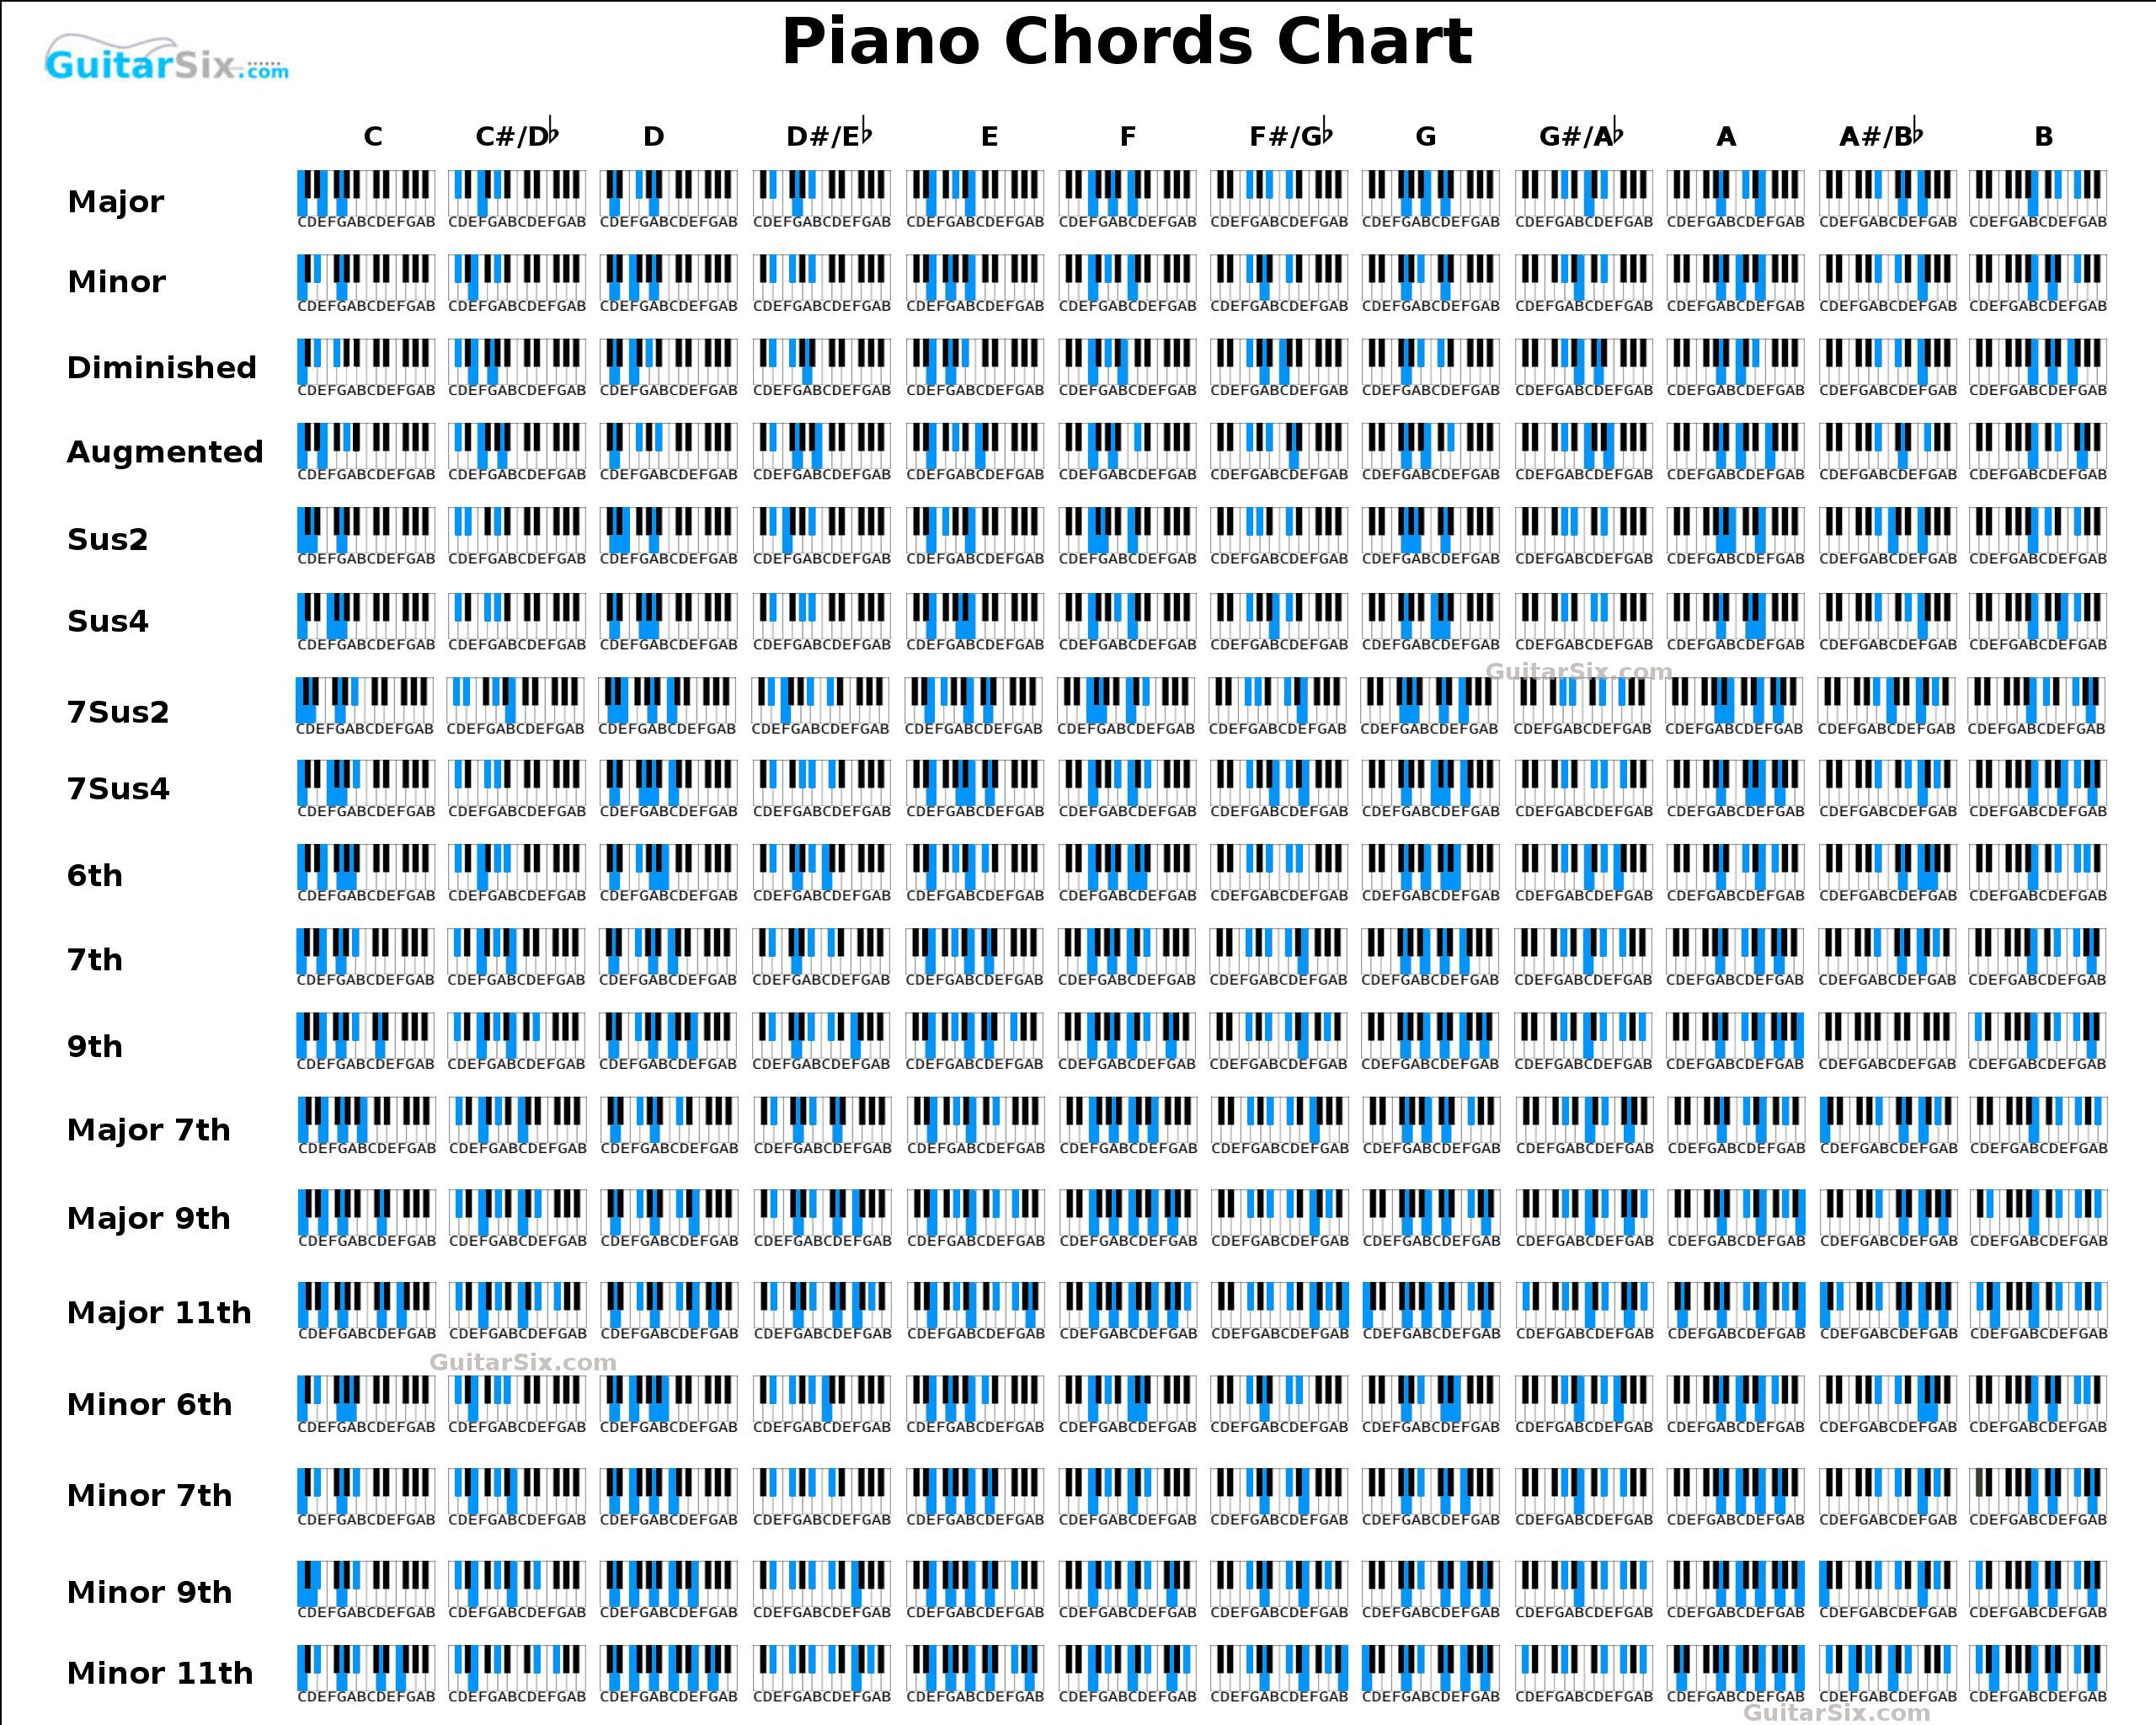 Piano chord chart piano pinterest pianos free piano and piano chords 28 images piano chords piano notes piano chord chart catskill start guitar and piano chords taralets free piano chord chart kullee hexwebz Image collections